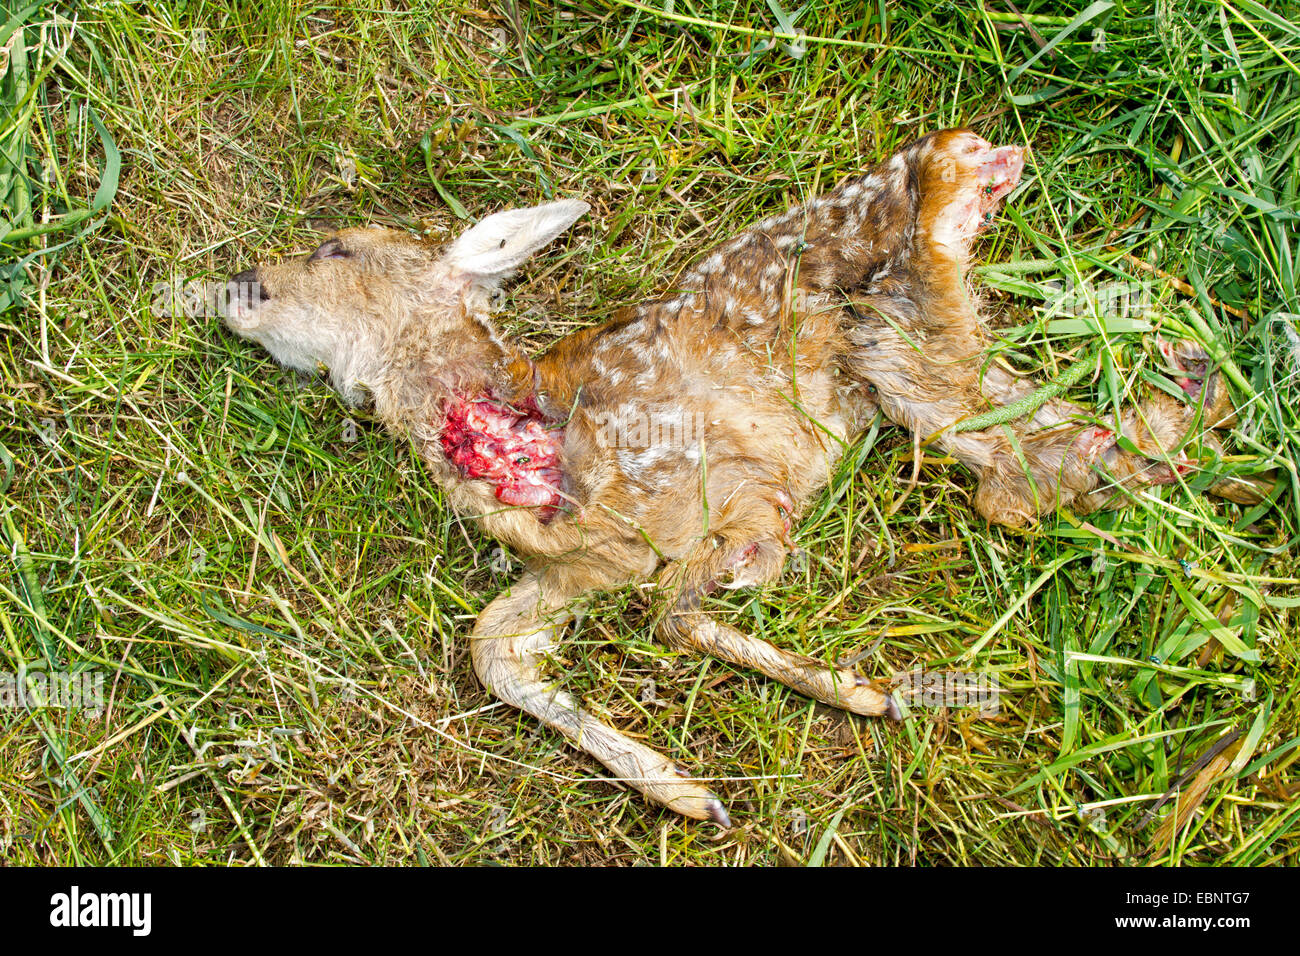 roe deer (Capreolus capreolus), fawn killed by tractor, Germany - Stock Image